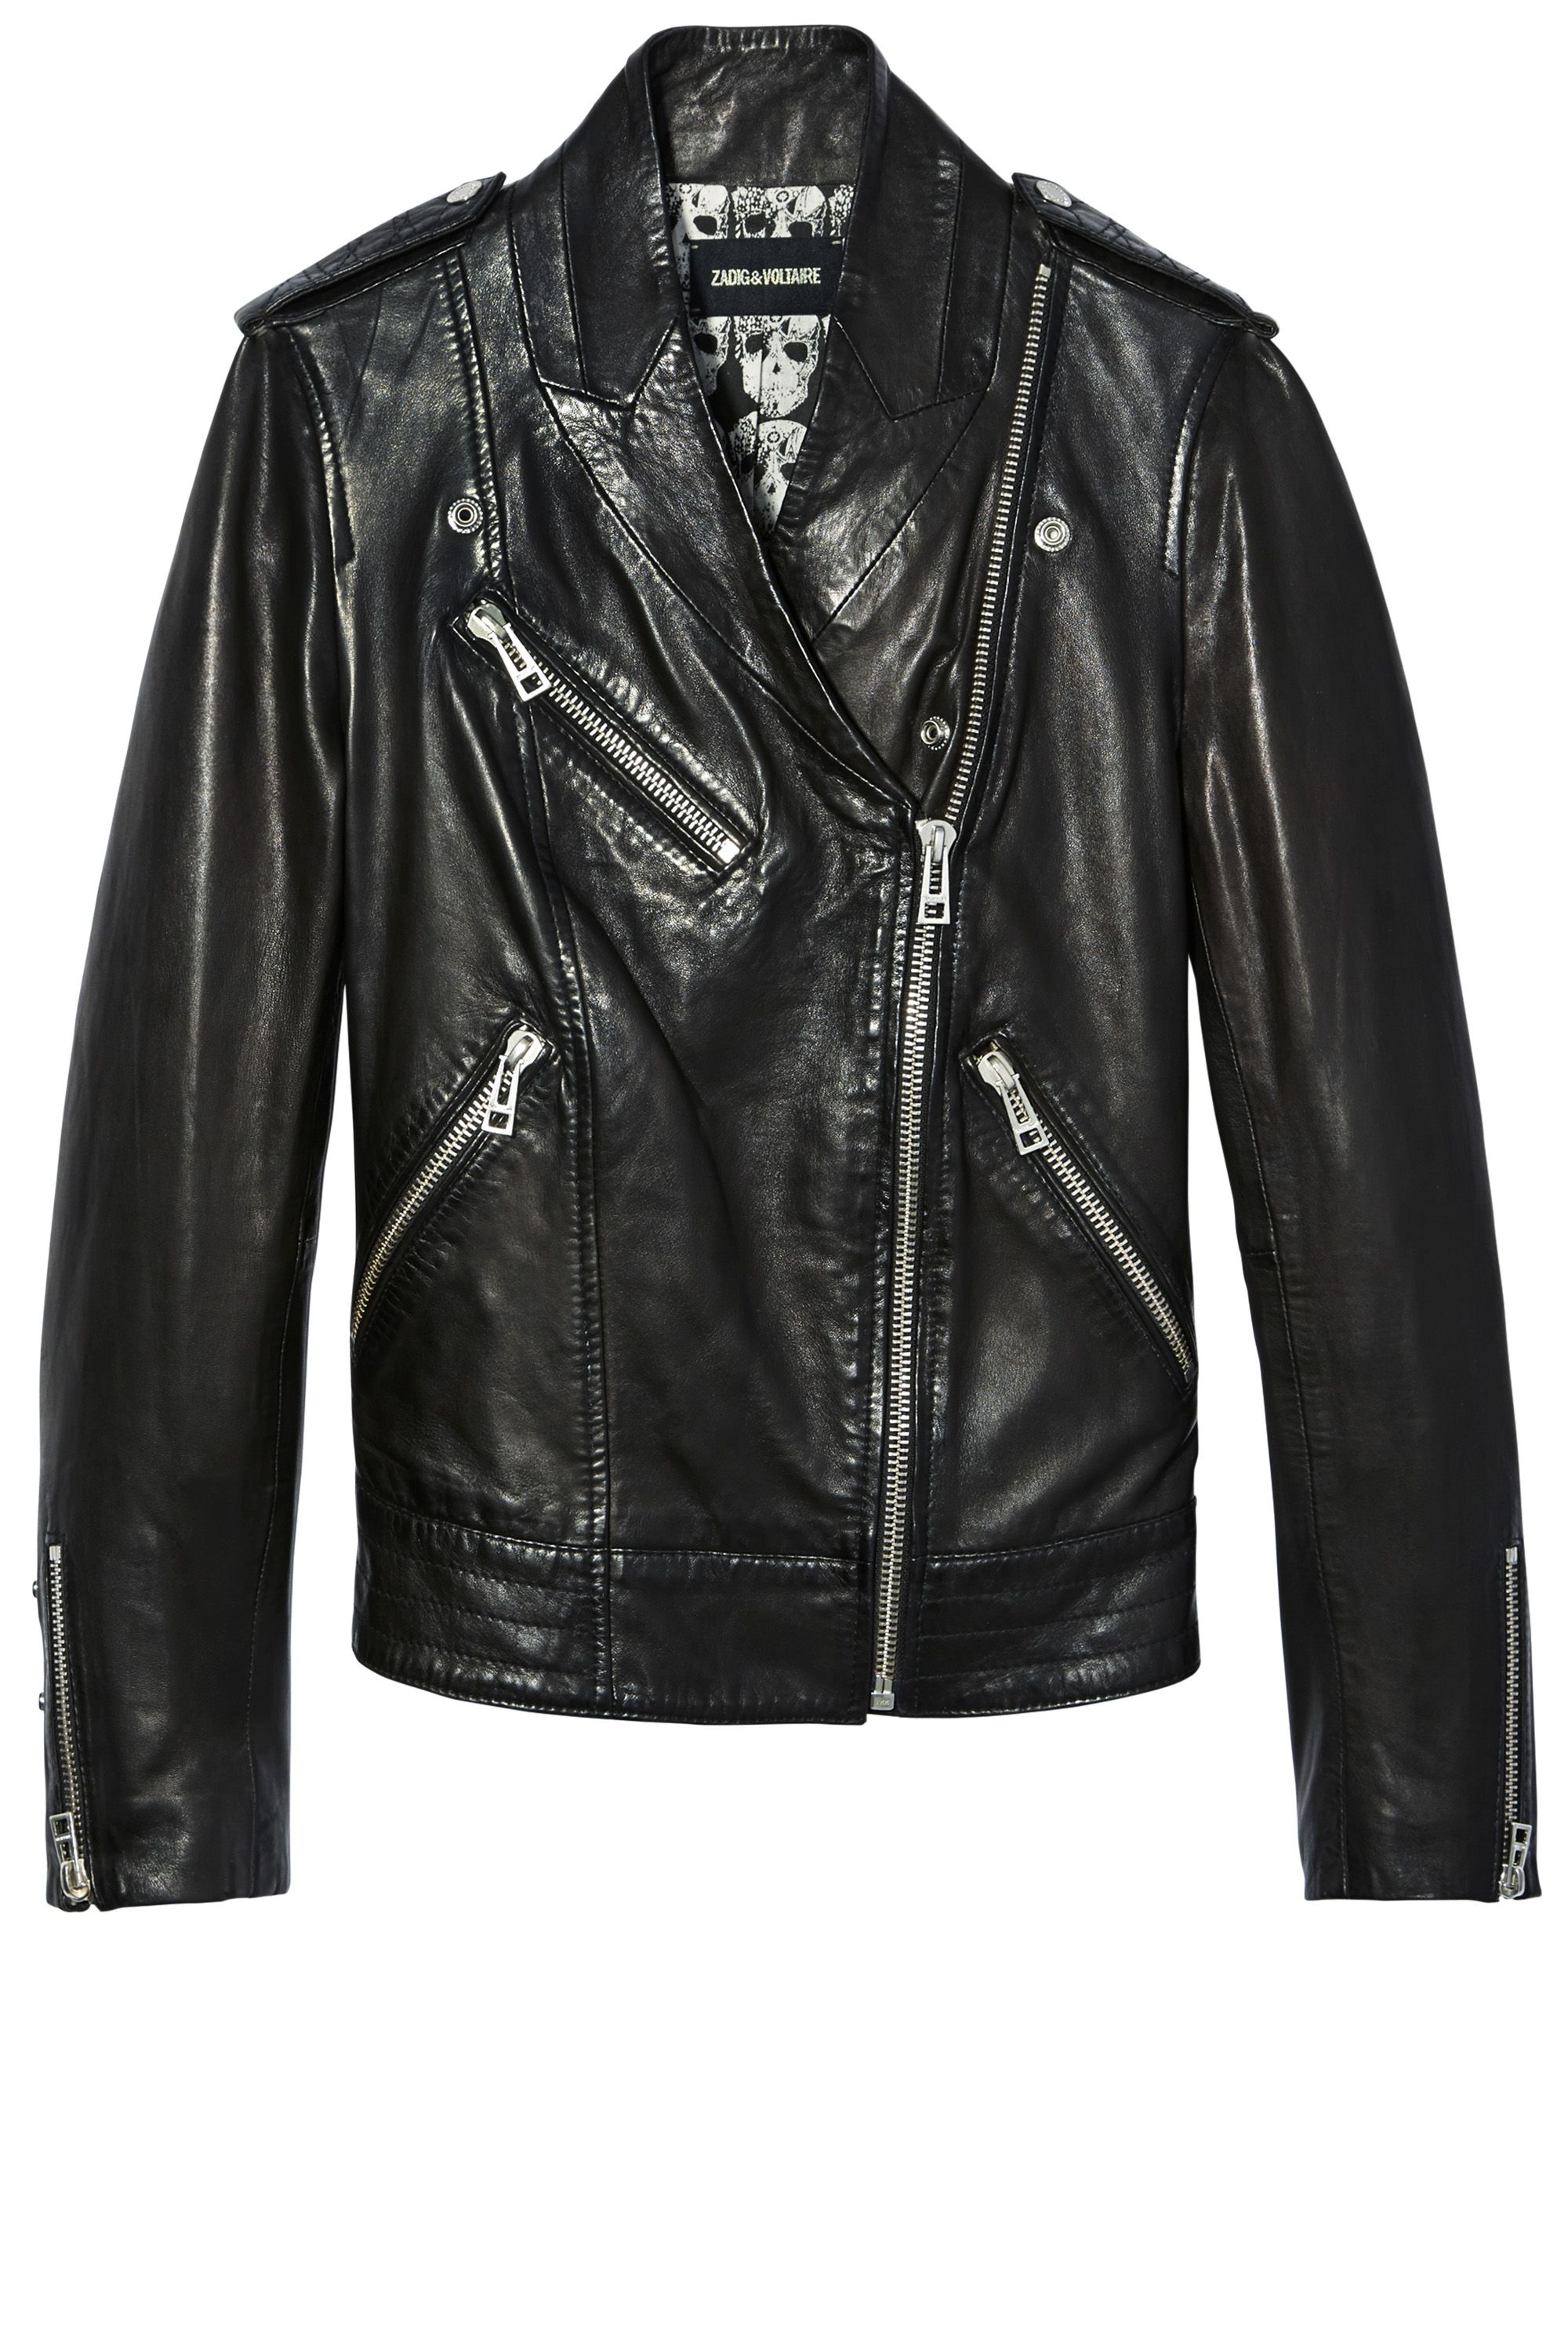 "<p><strong>Zadig & Voltaire</strong> jacket, $798,  <a href=""http://www.zadig-et-voltaire.com/"" target=""_blank"">zadig-et-voltaire.com</a>.</p>"